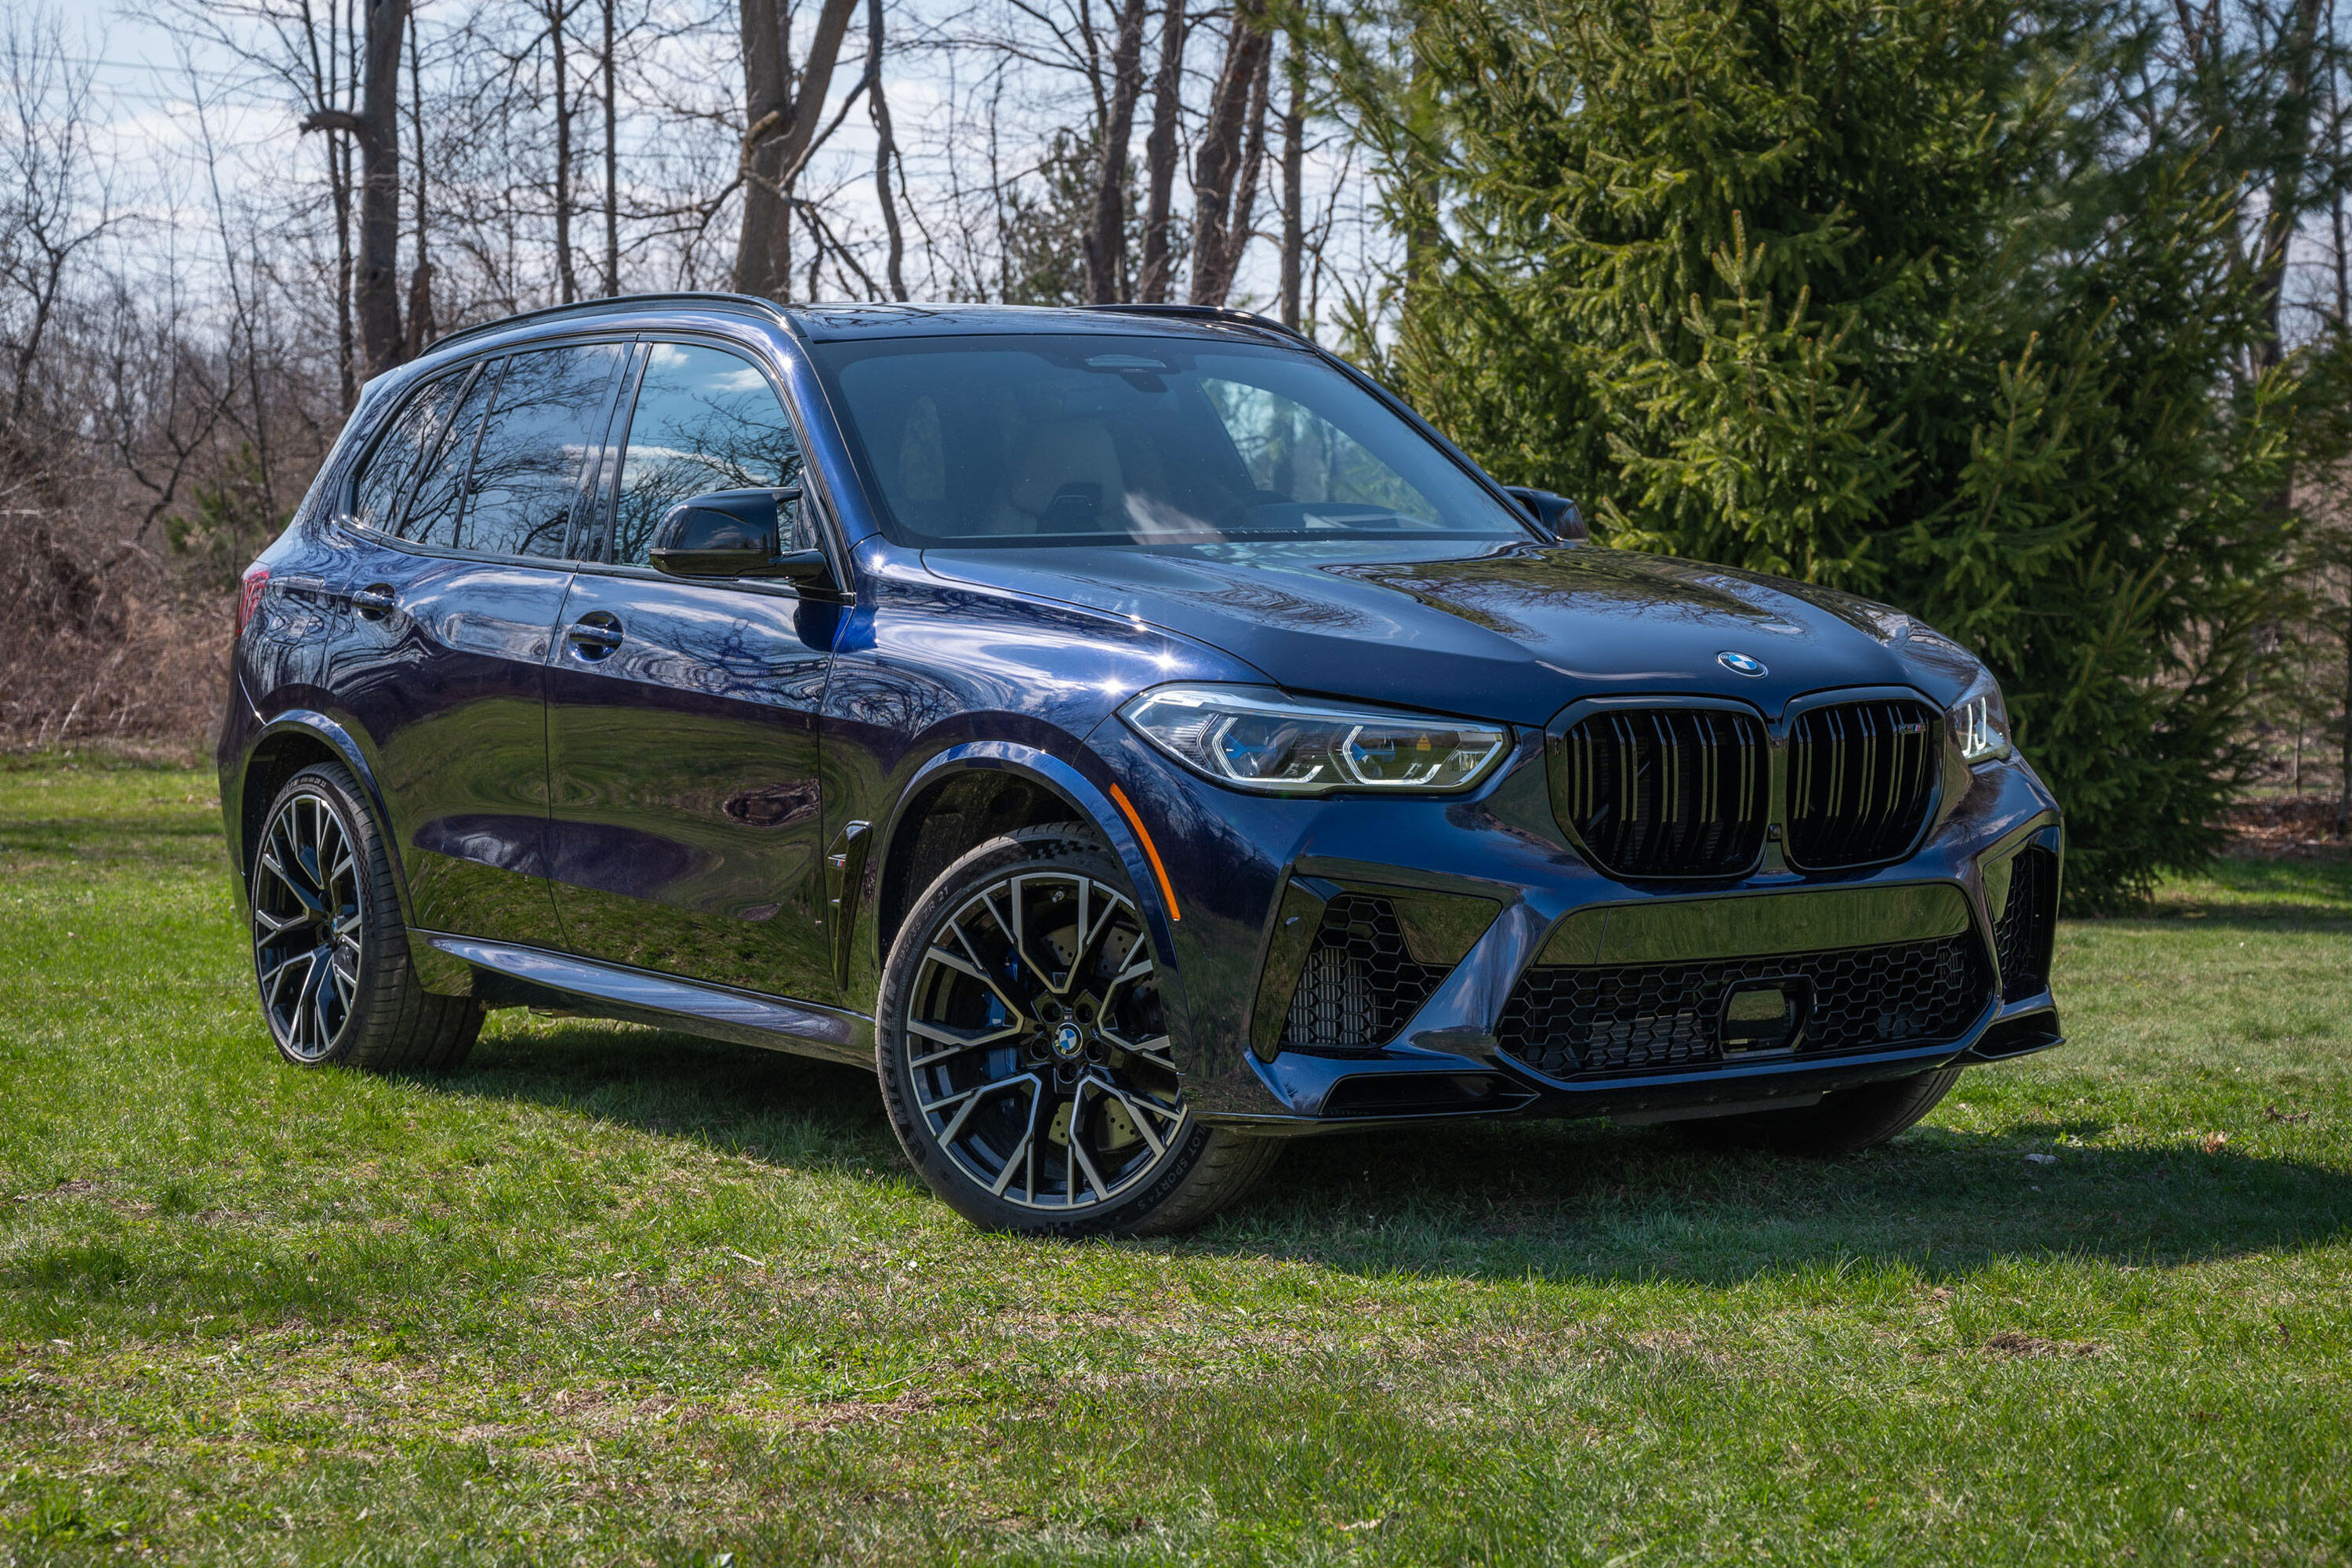 2020-bmw-x5-m-competition-main-art